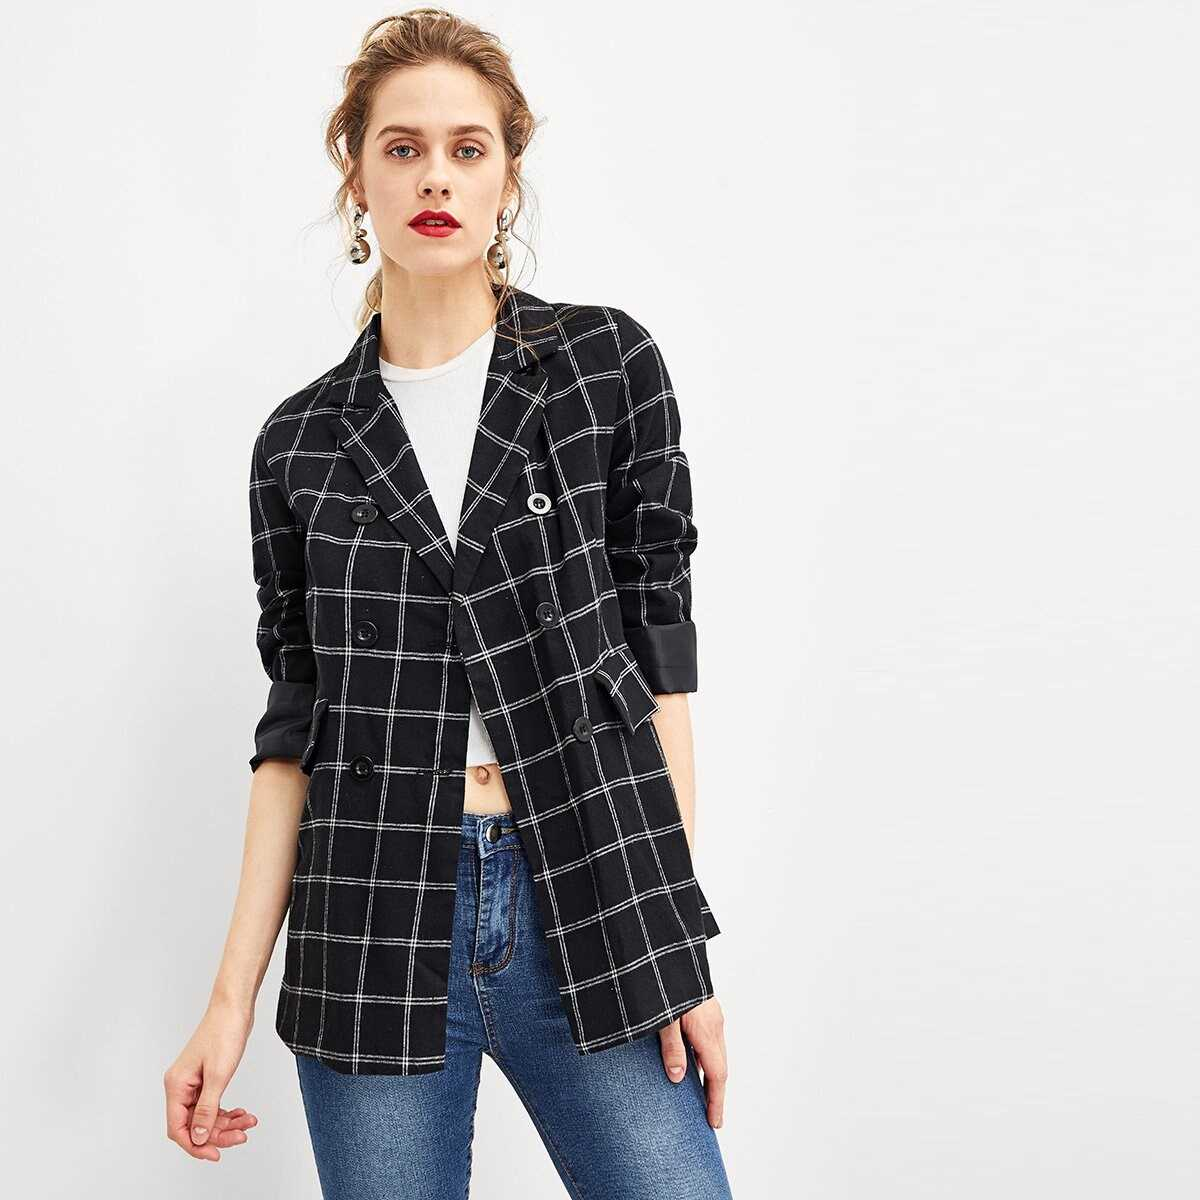 Double-Breasted Plaid Blazer in Black by ROMWE on GOOFASH